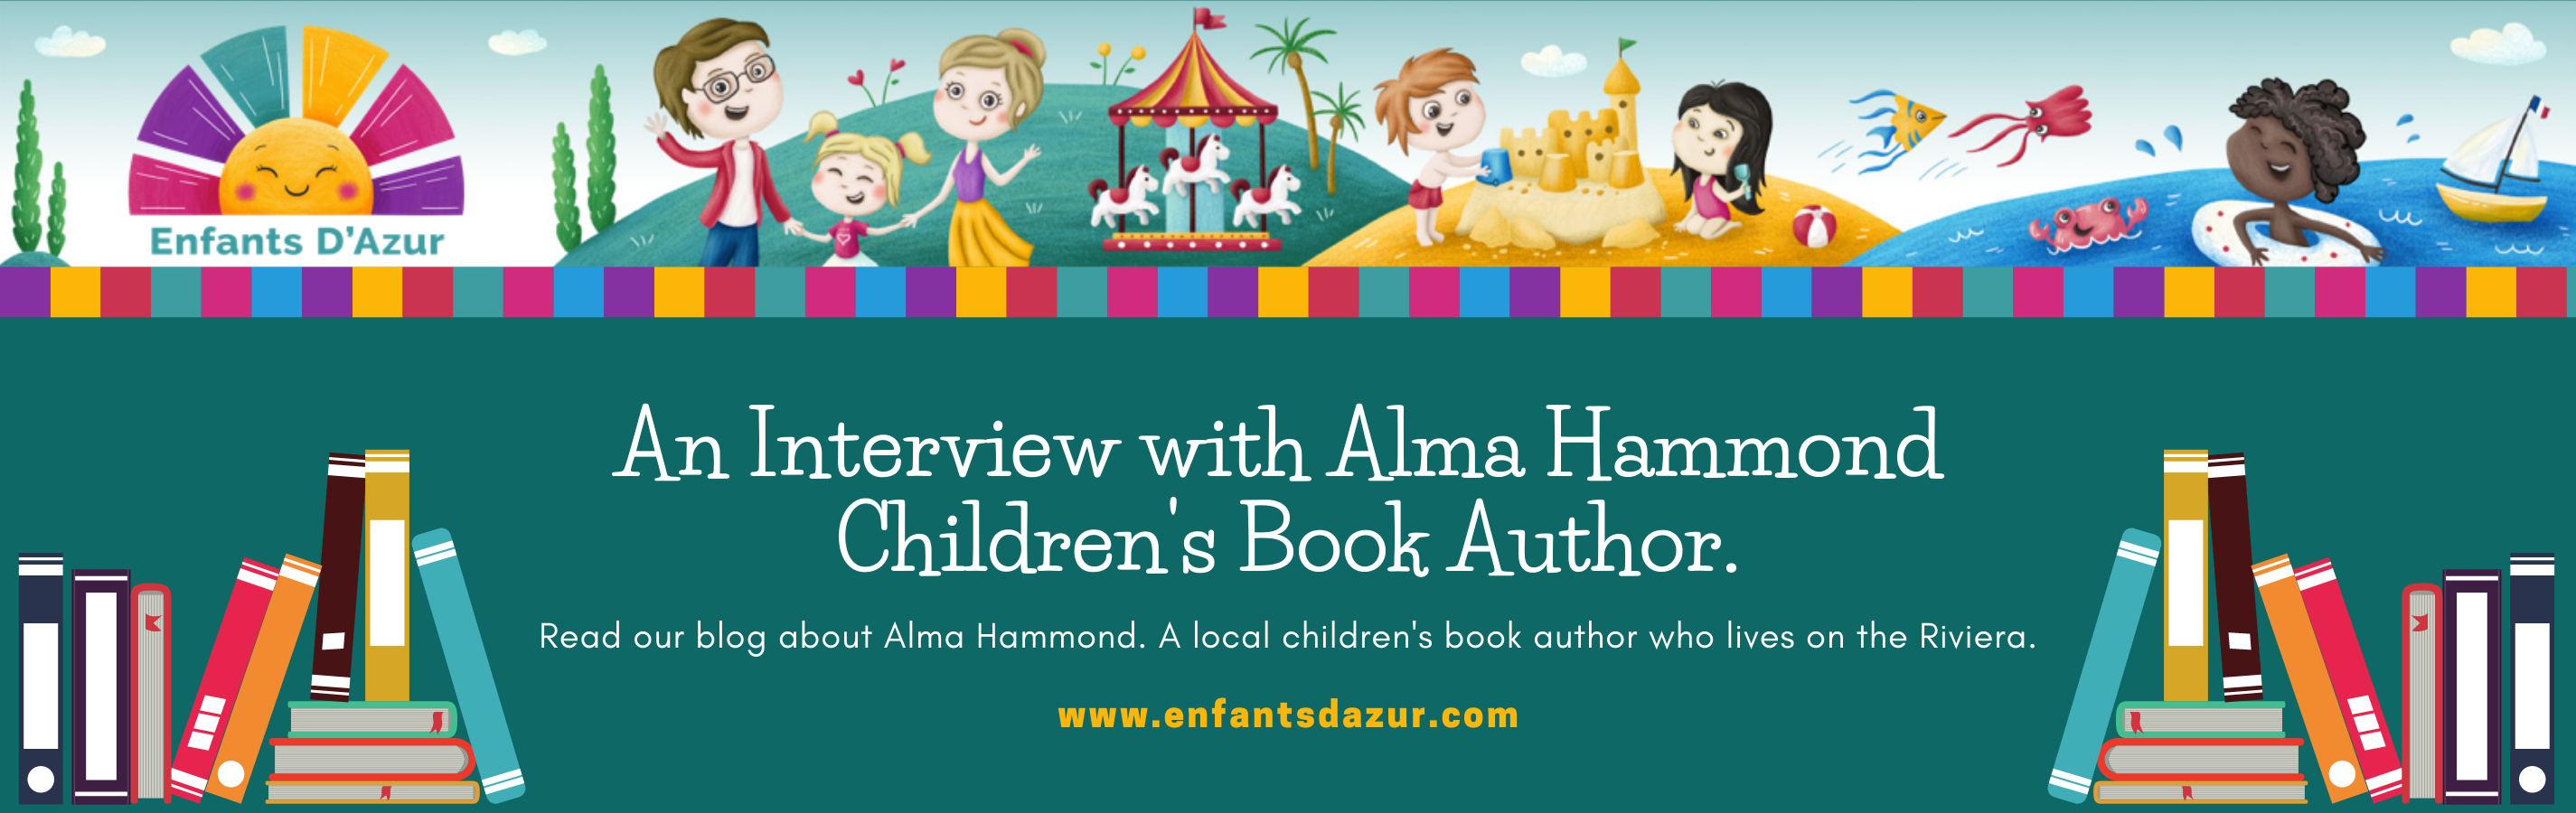 A Interview With Alma Hammond, Children's Book Author Blog Title Graphic